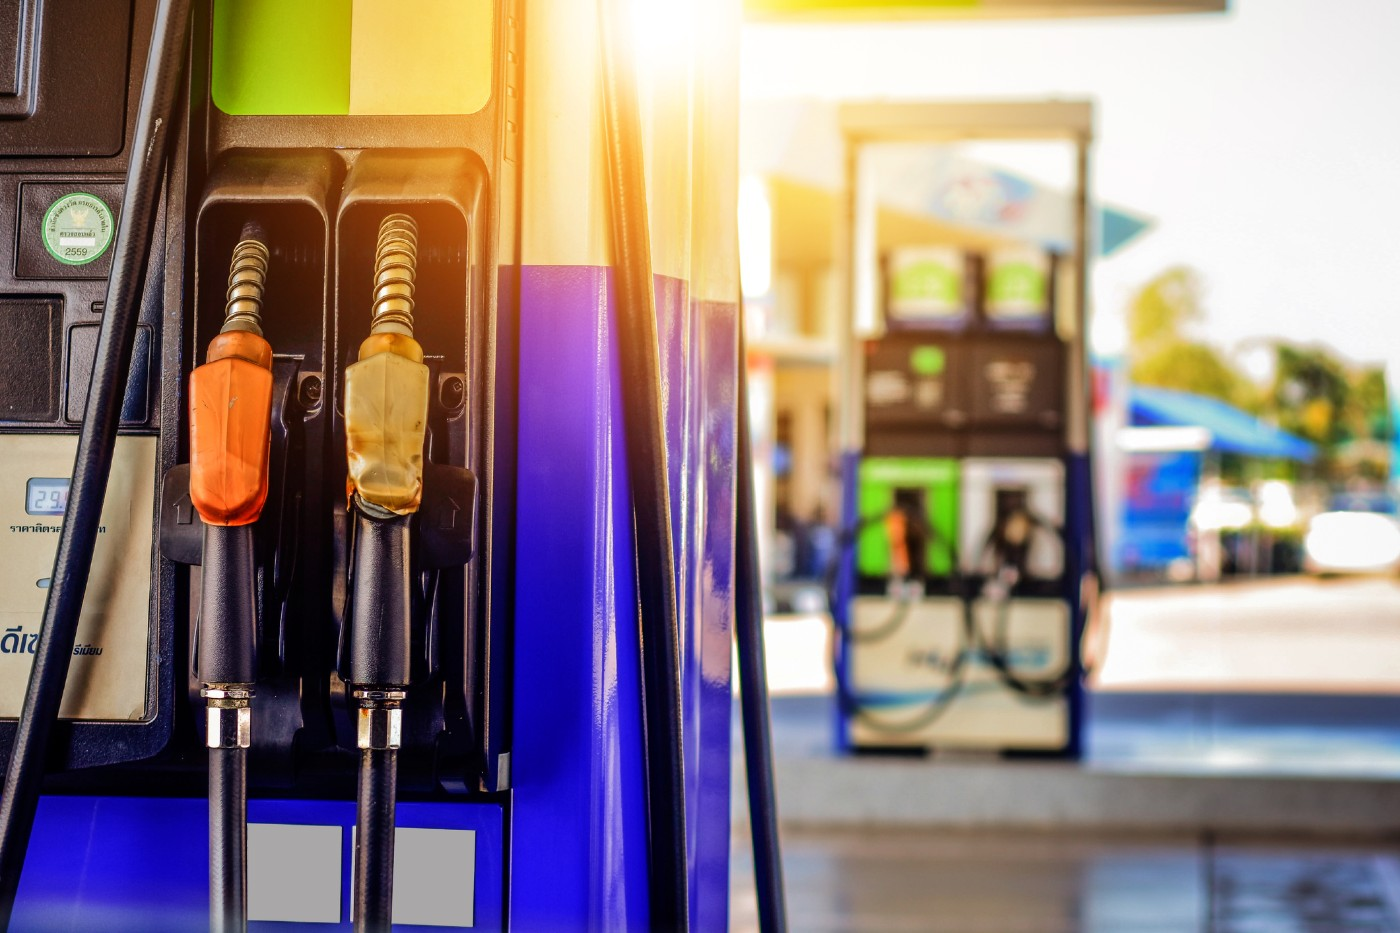 https://tickertapecdn.tdameritrade.com/assets/images/pages/md/Gas pumps: energy sector preview